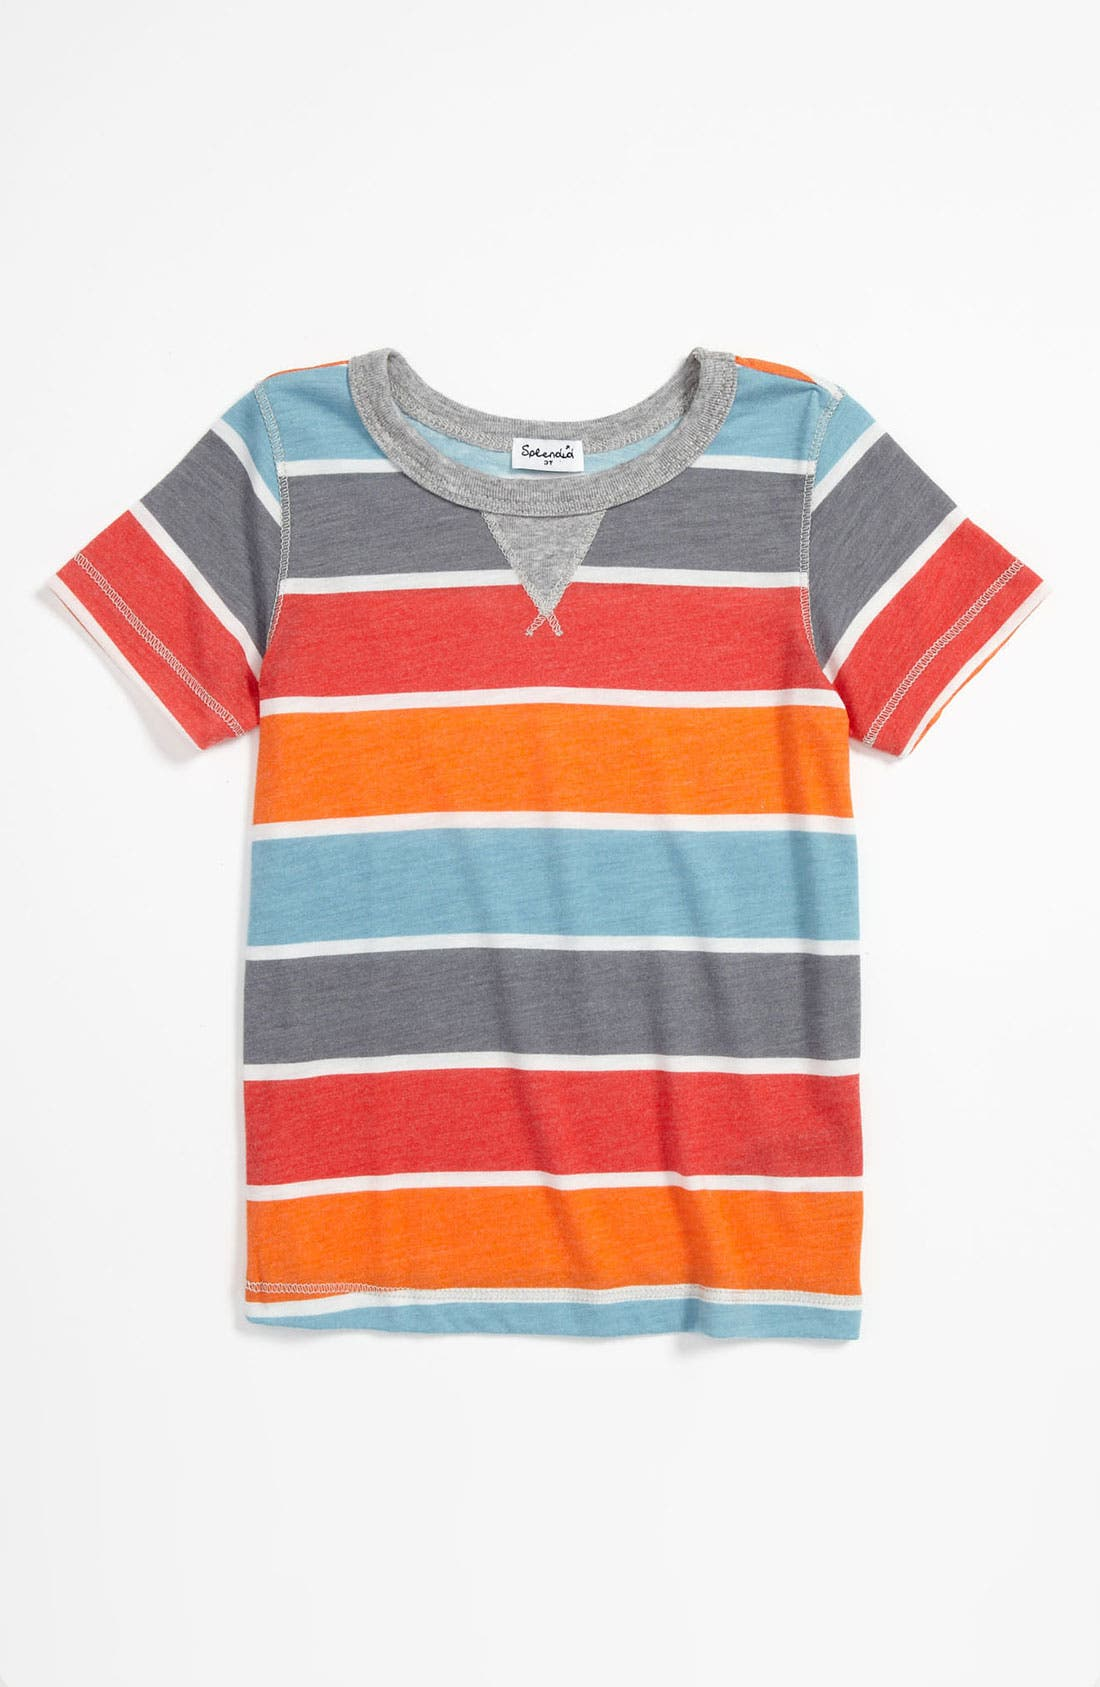 Alternate Image 1 Selected - Splendid Stripe T-Shirt (Toddler)